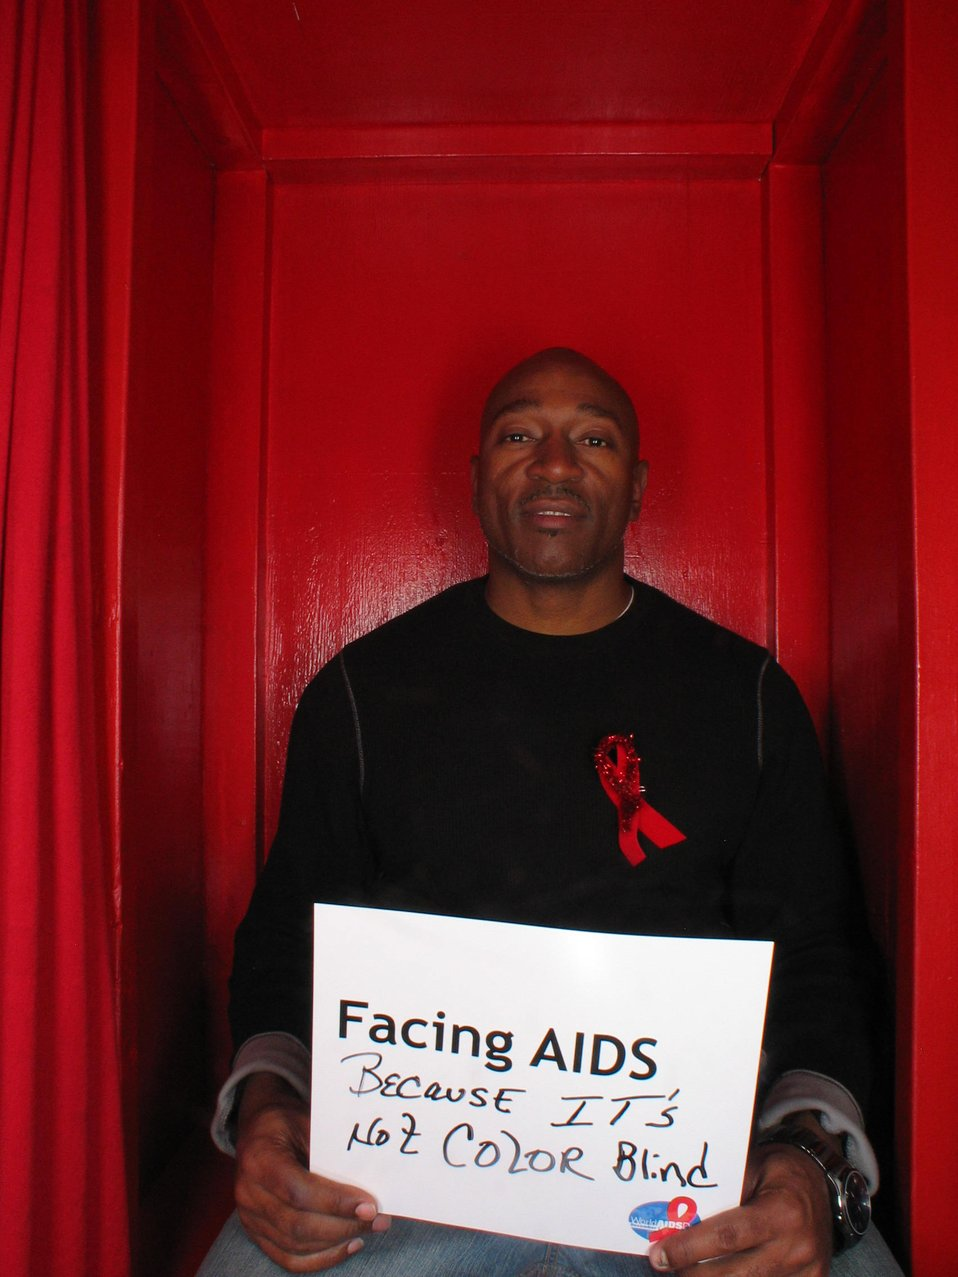 Facing AIDS because it's not color blind.